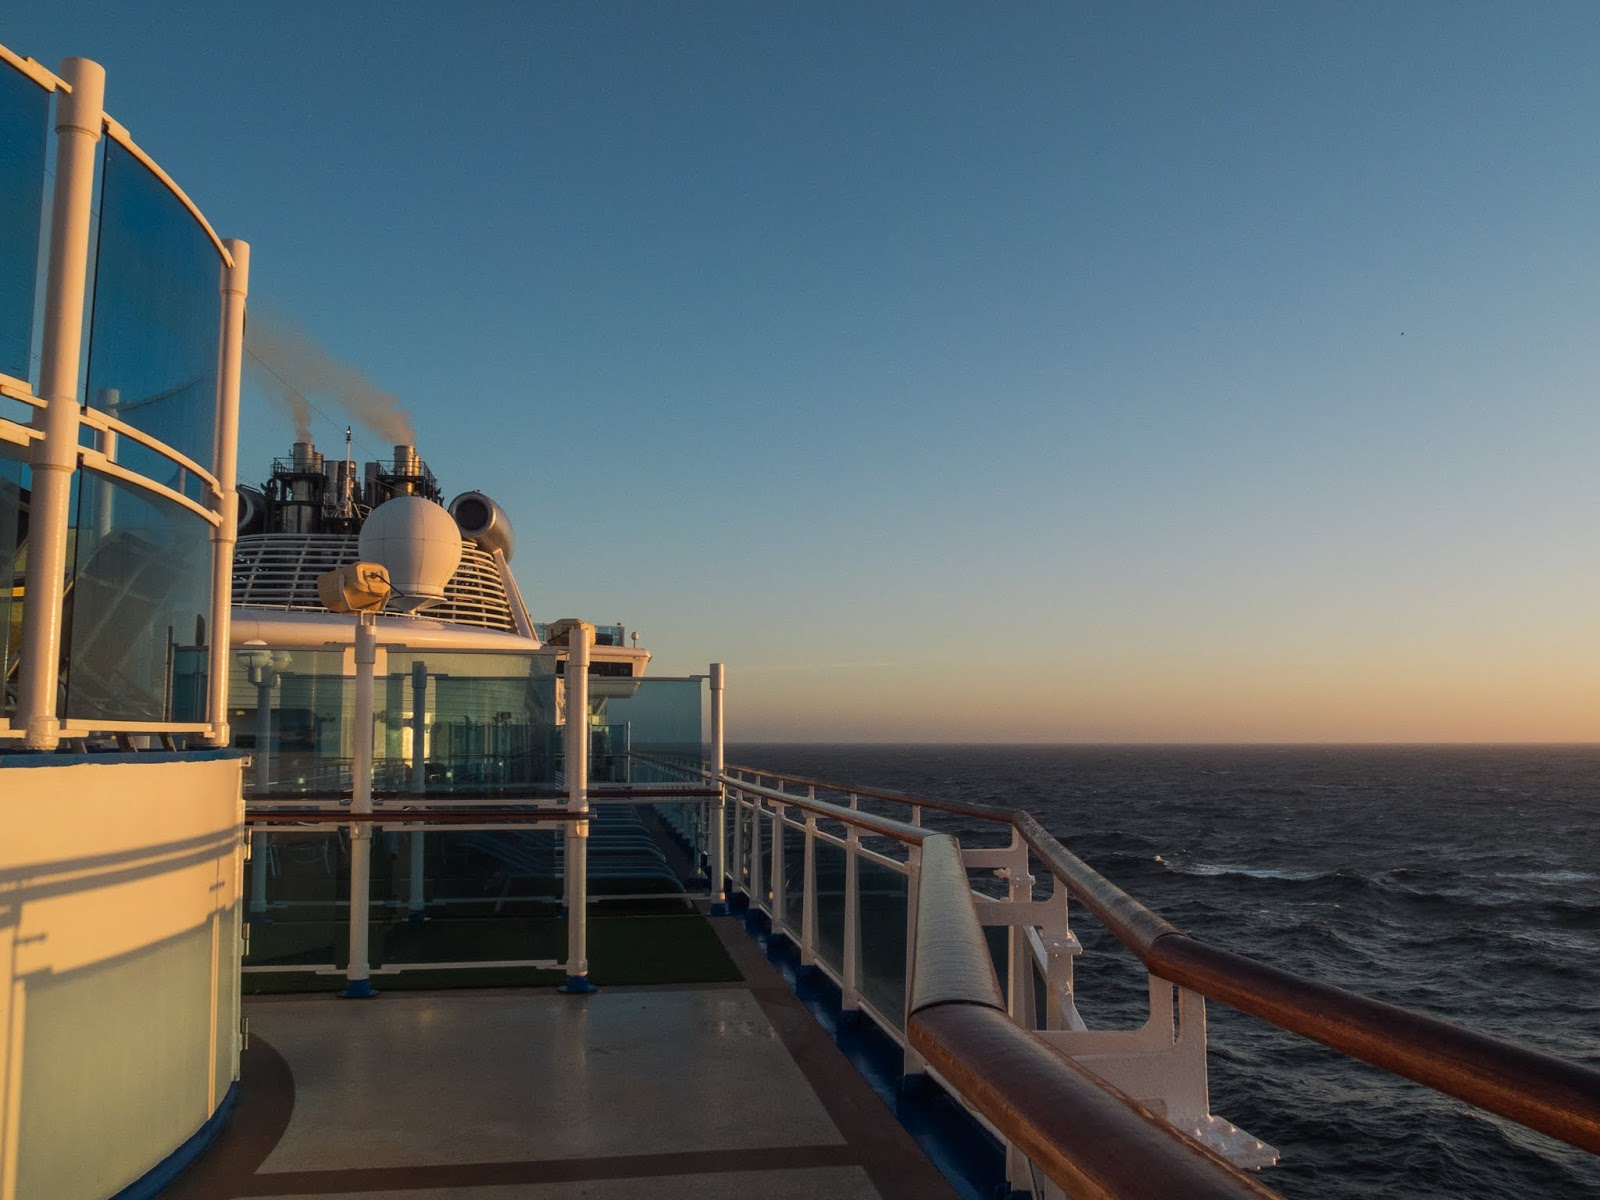 Early morning light on the Atlantic Ocean from the Sapphire Princess.